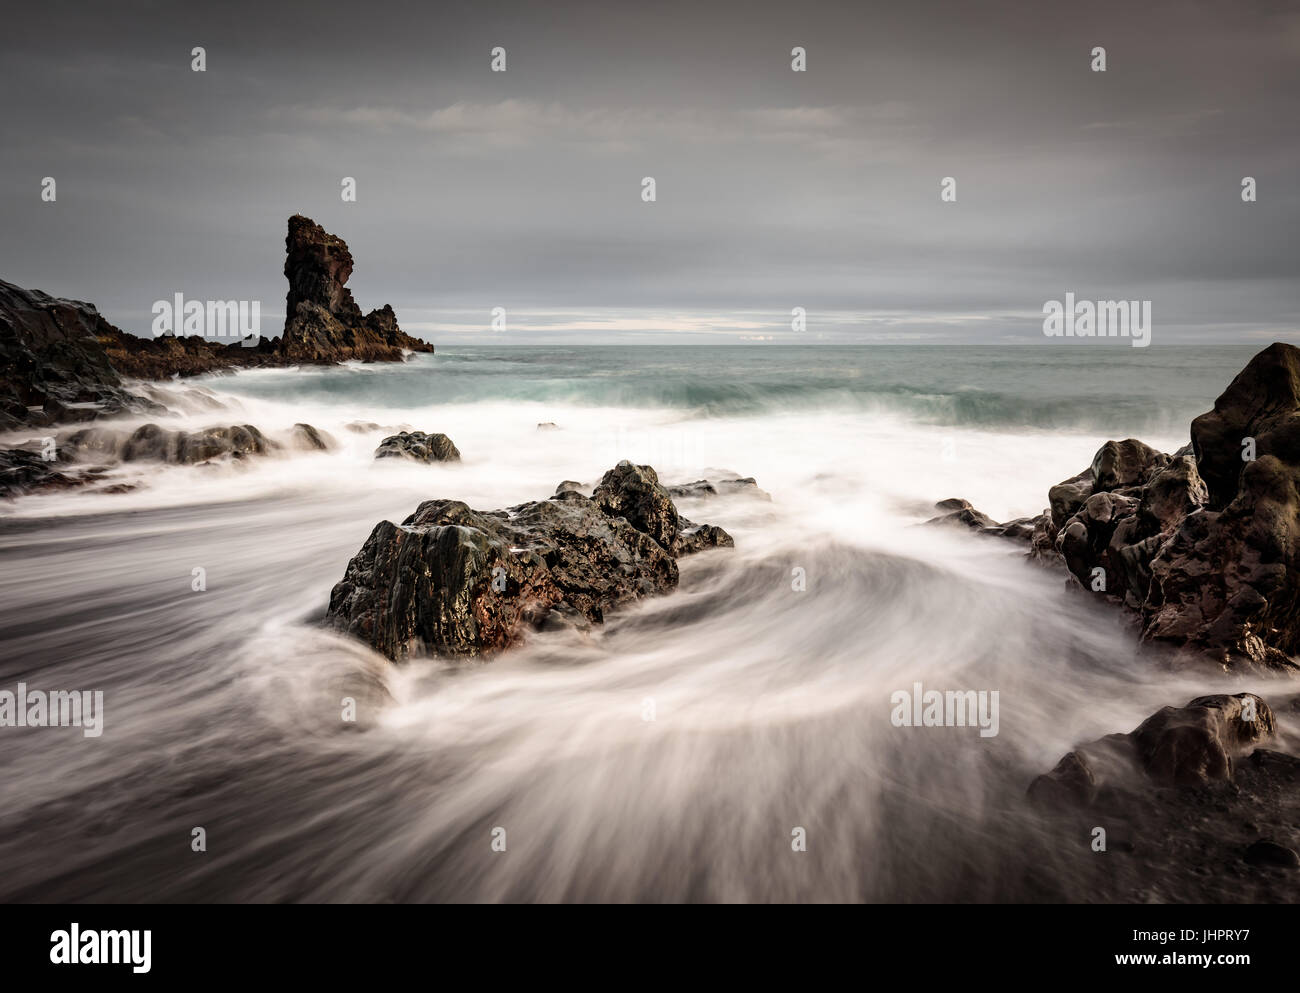 Sea stacks in western iceland - Stock Image